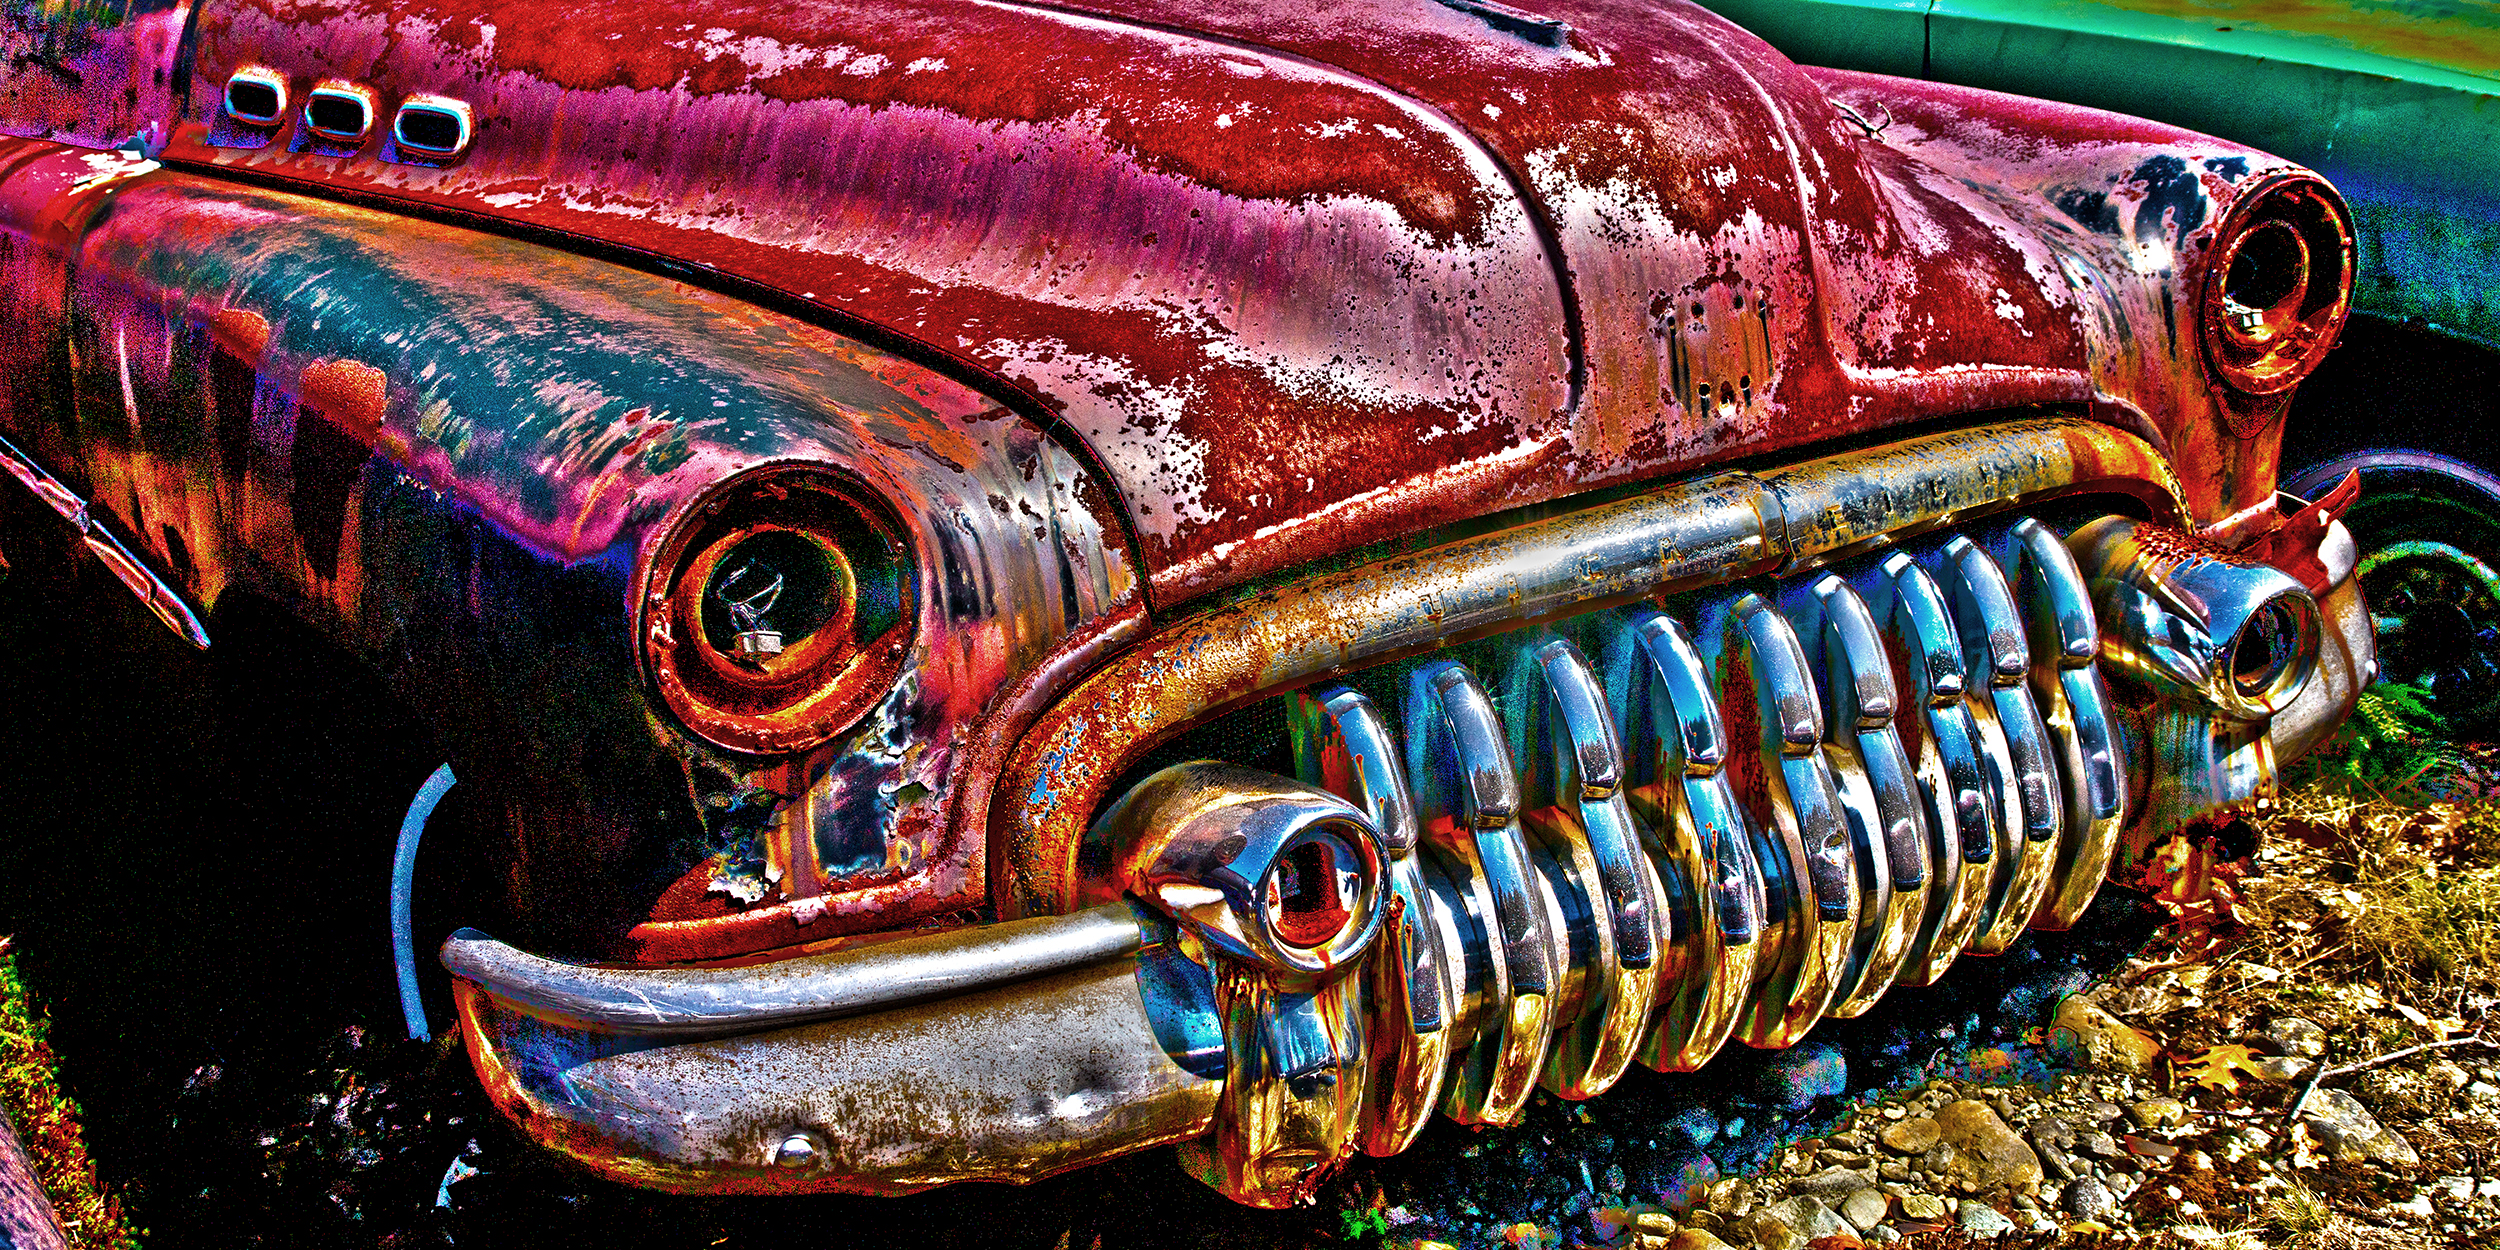 _DSC3463 Toothy Buick 2 to 1.jpg